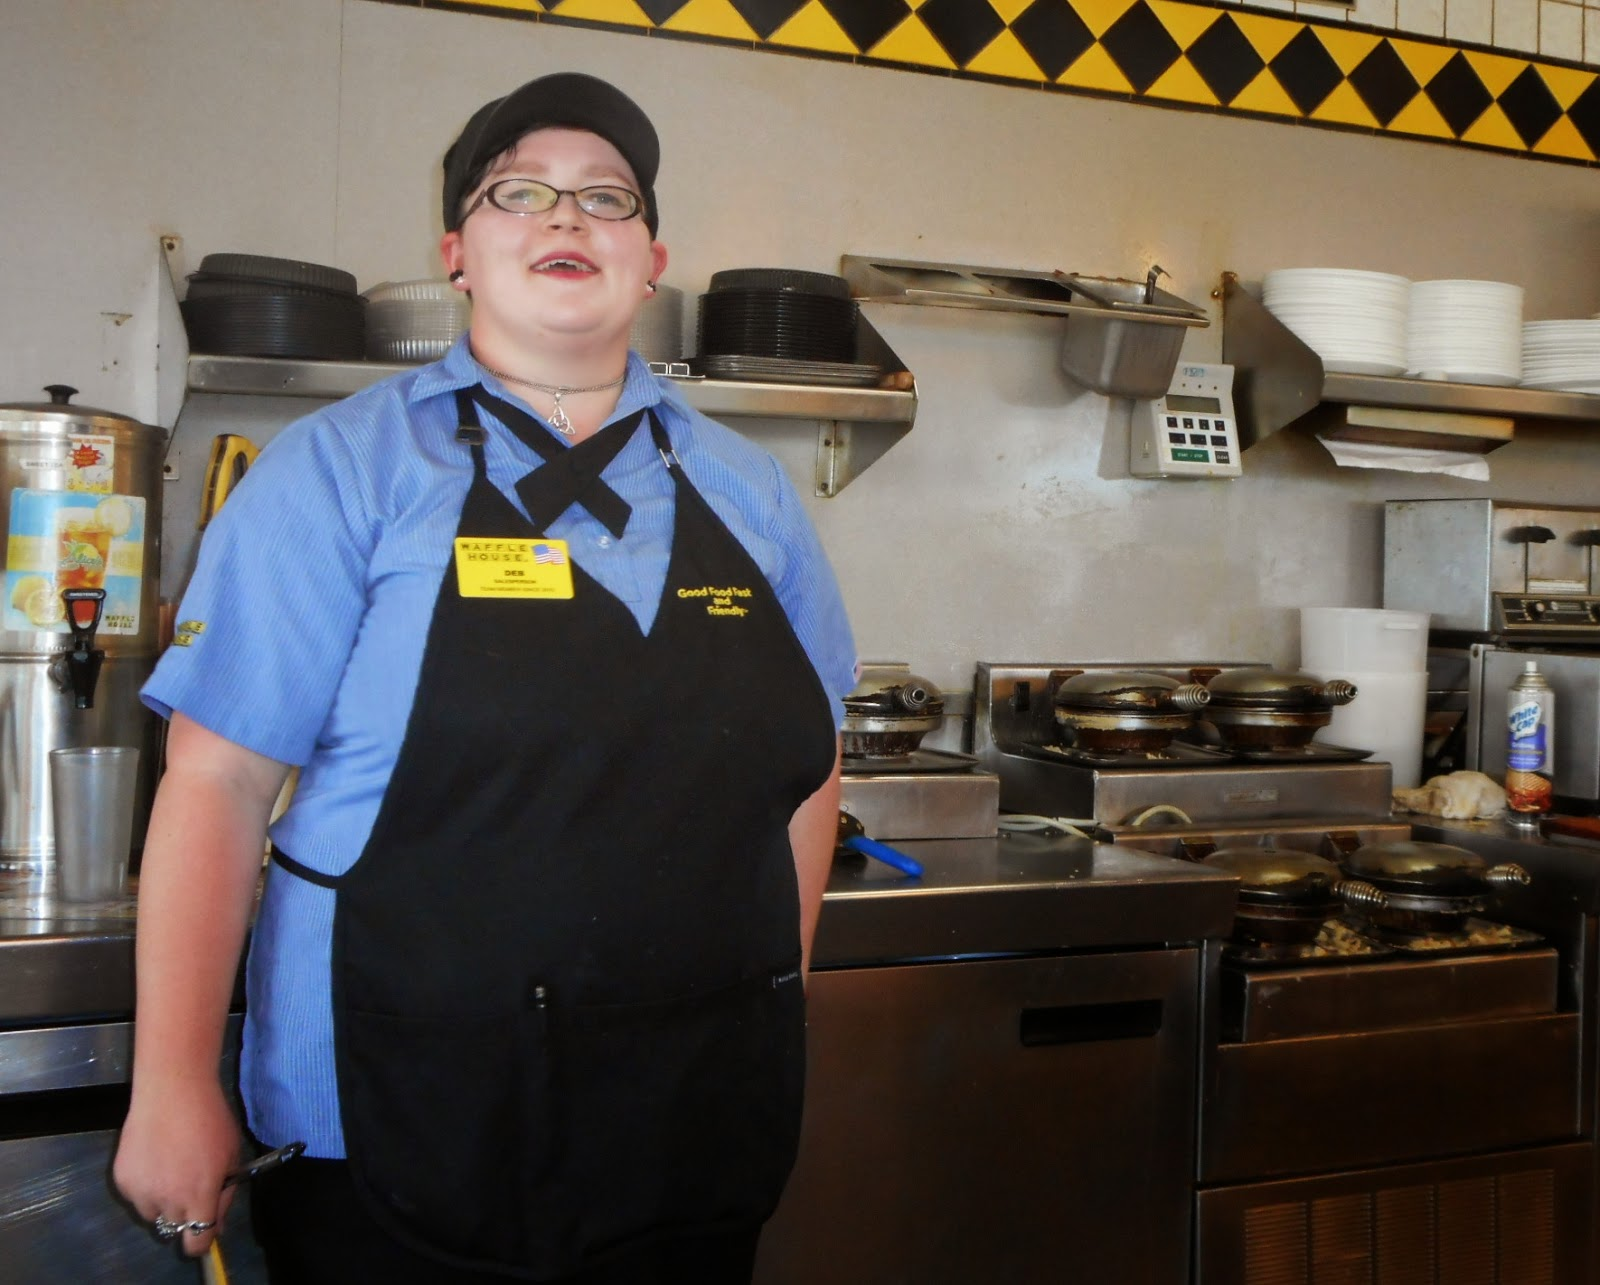 waffle house customer makes own meal after finding employees